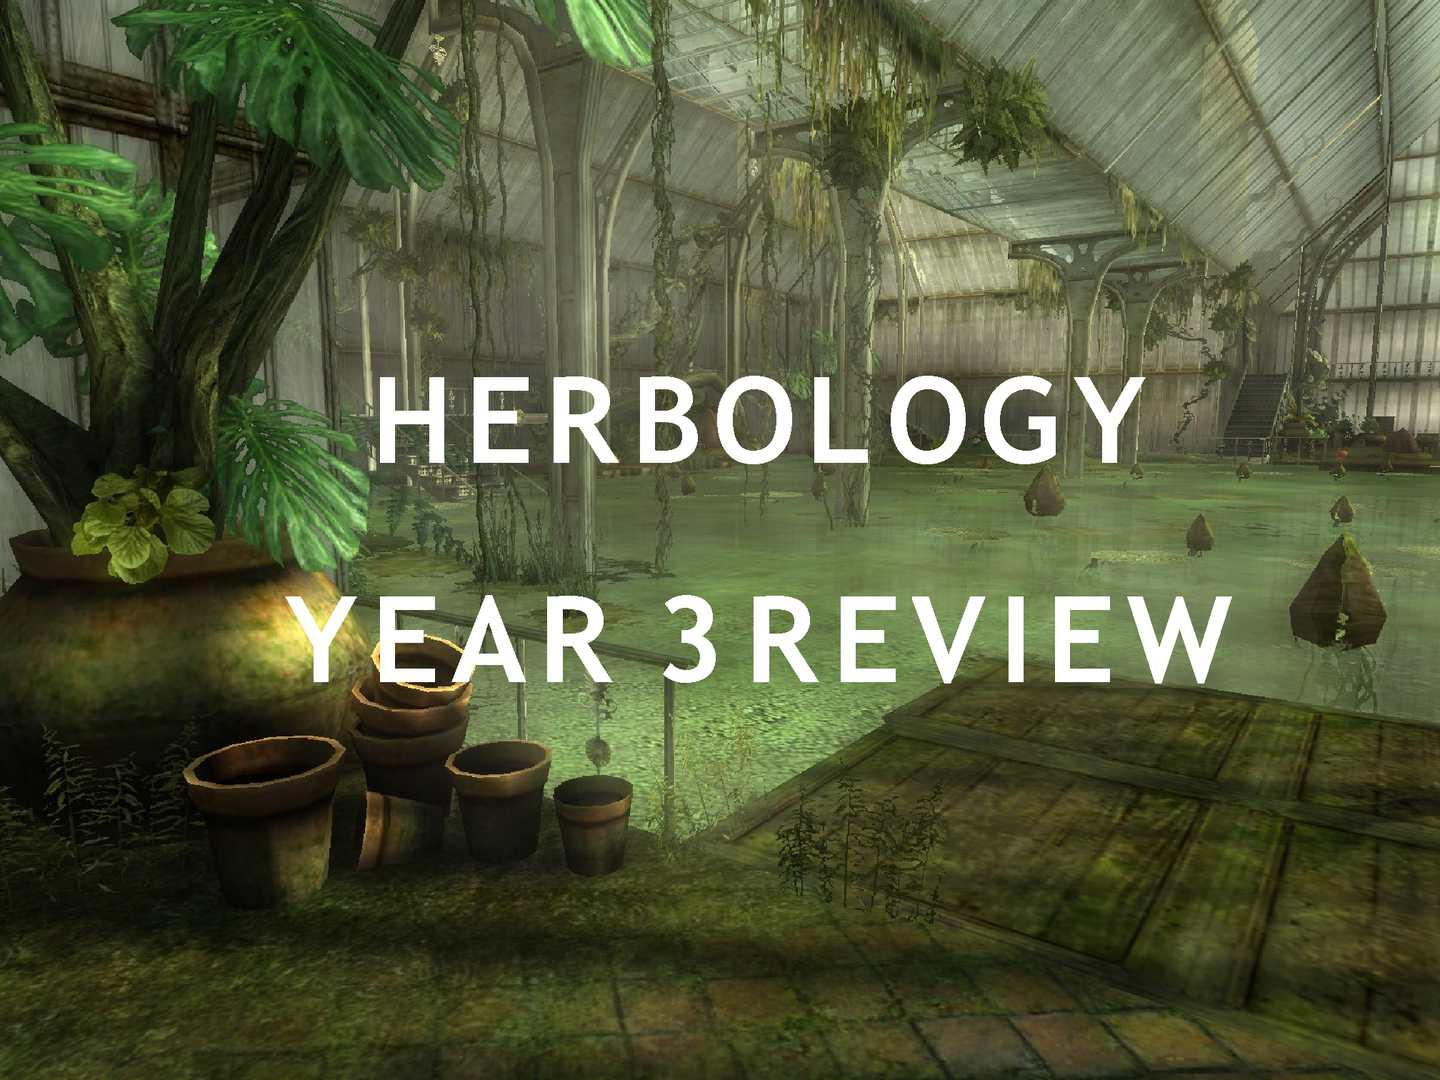 Herb.Review.Year3